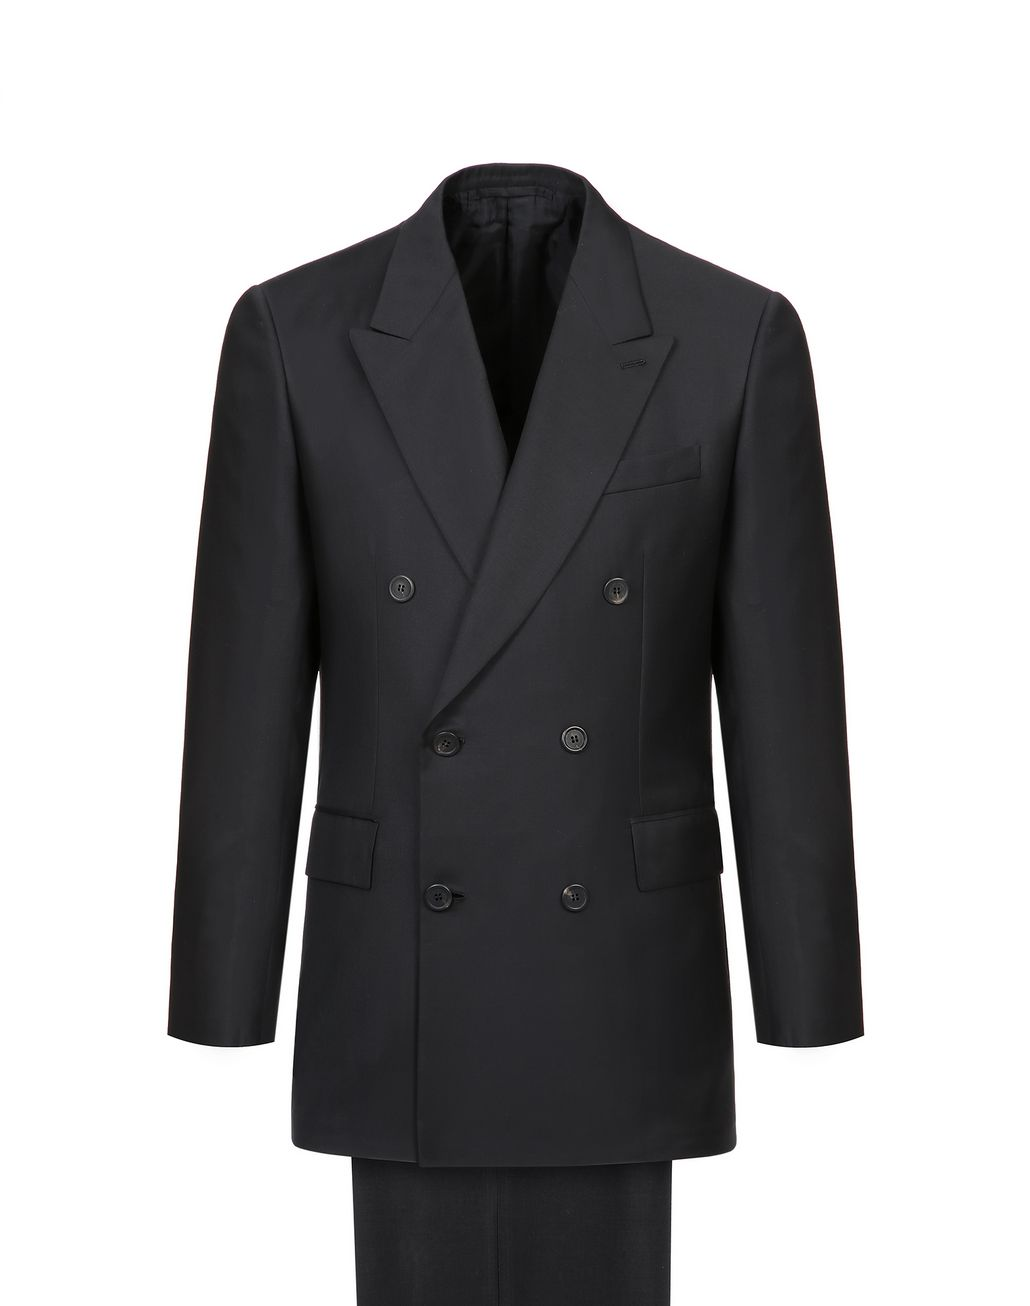 BRIONI Black Asmara Double-Breasted Suit Suits & Jackets Man f